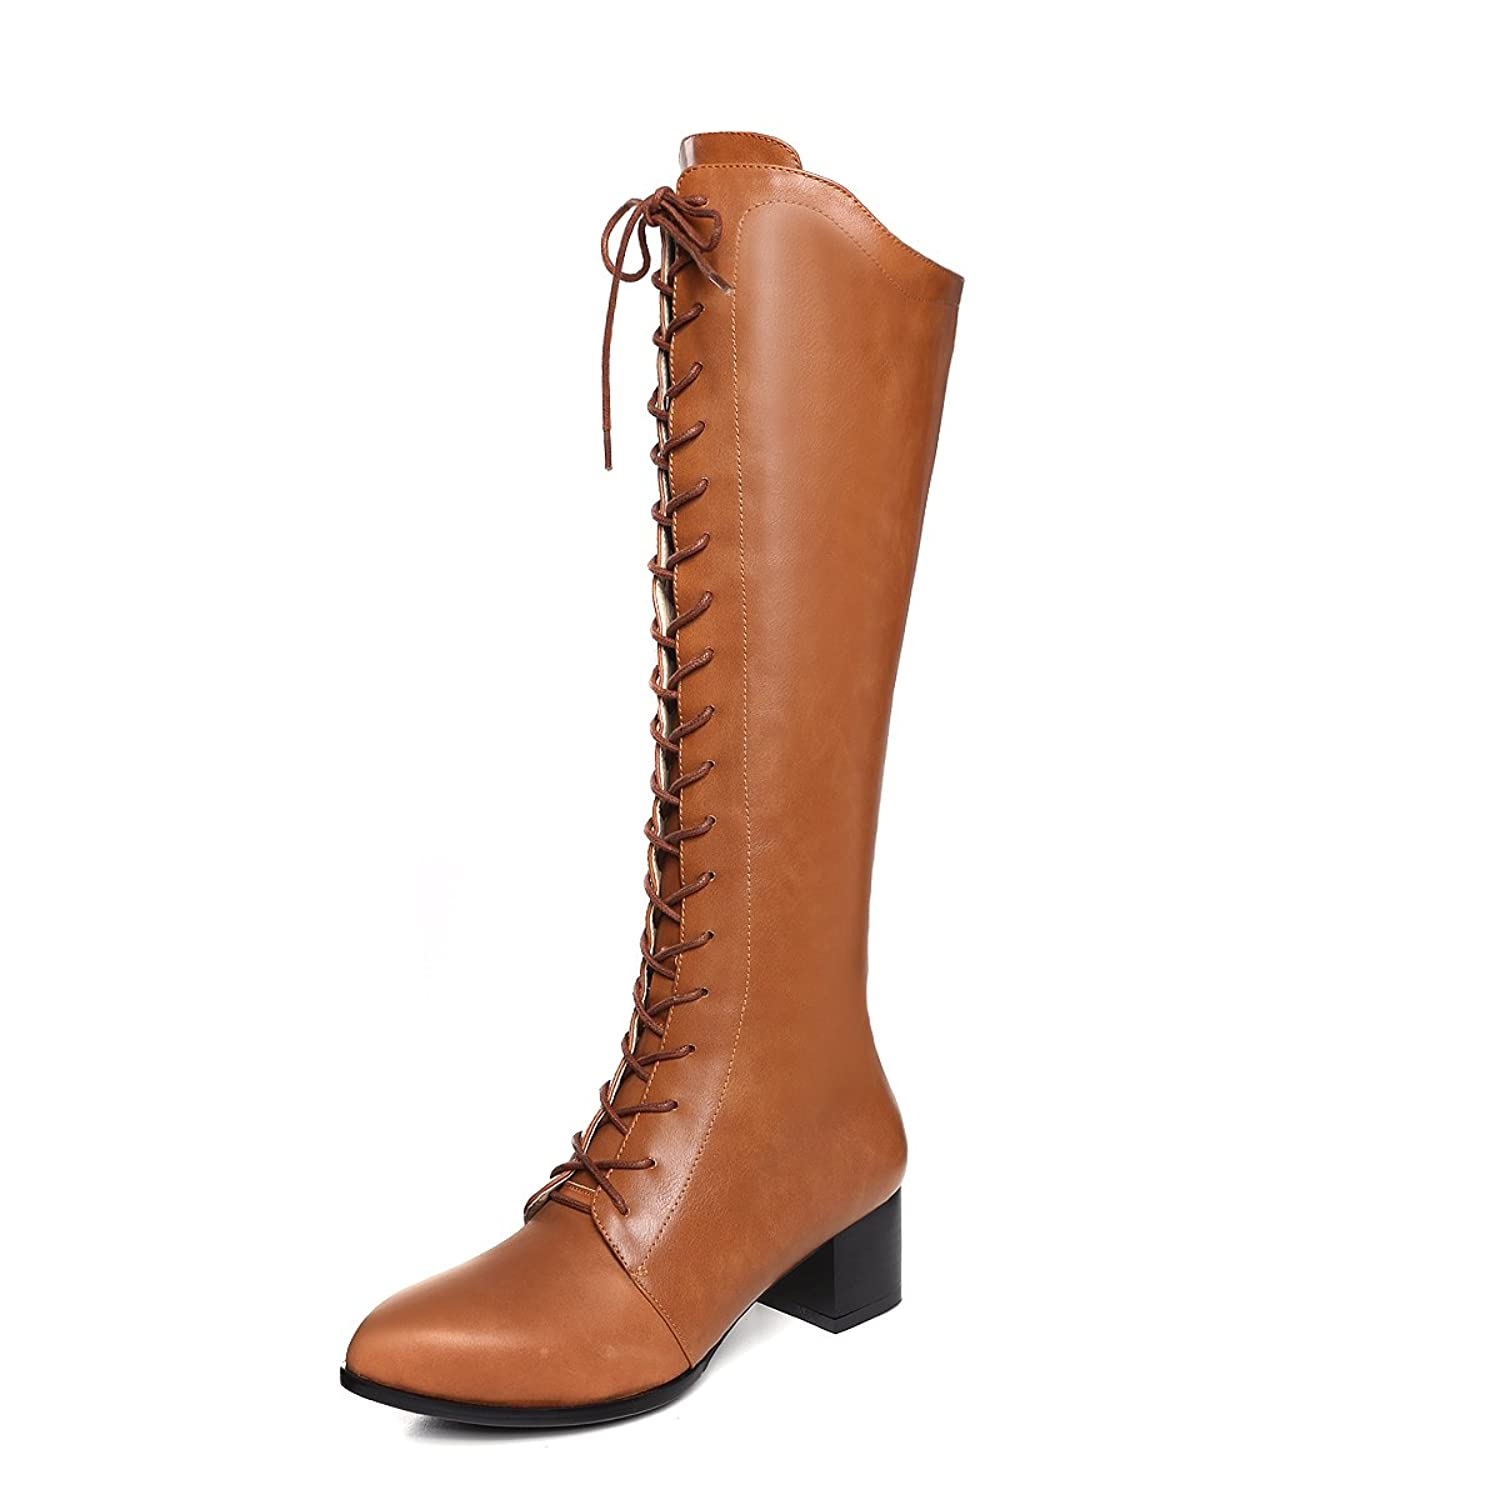 Steampunk Boots & Shoes, Heels & Flats NIQI Genuine Leather Womens Mid Heel Knee High Booties Side Zipper Combat Military Motorcycle Boots $89.00 AT vintagedancer.com